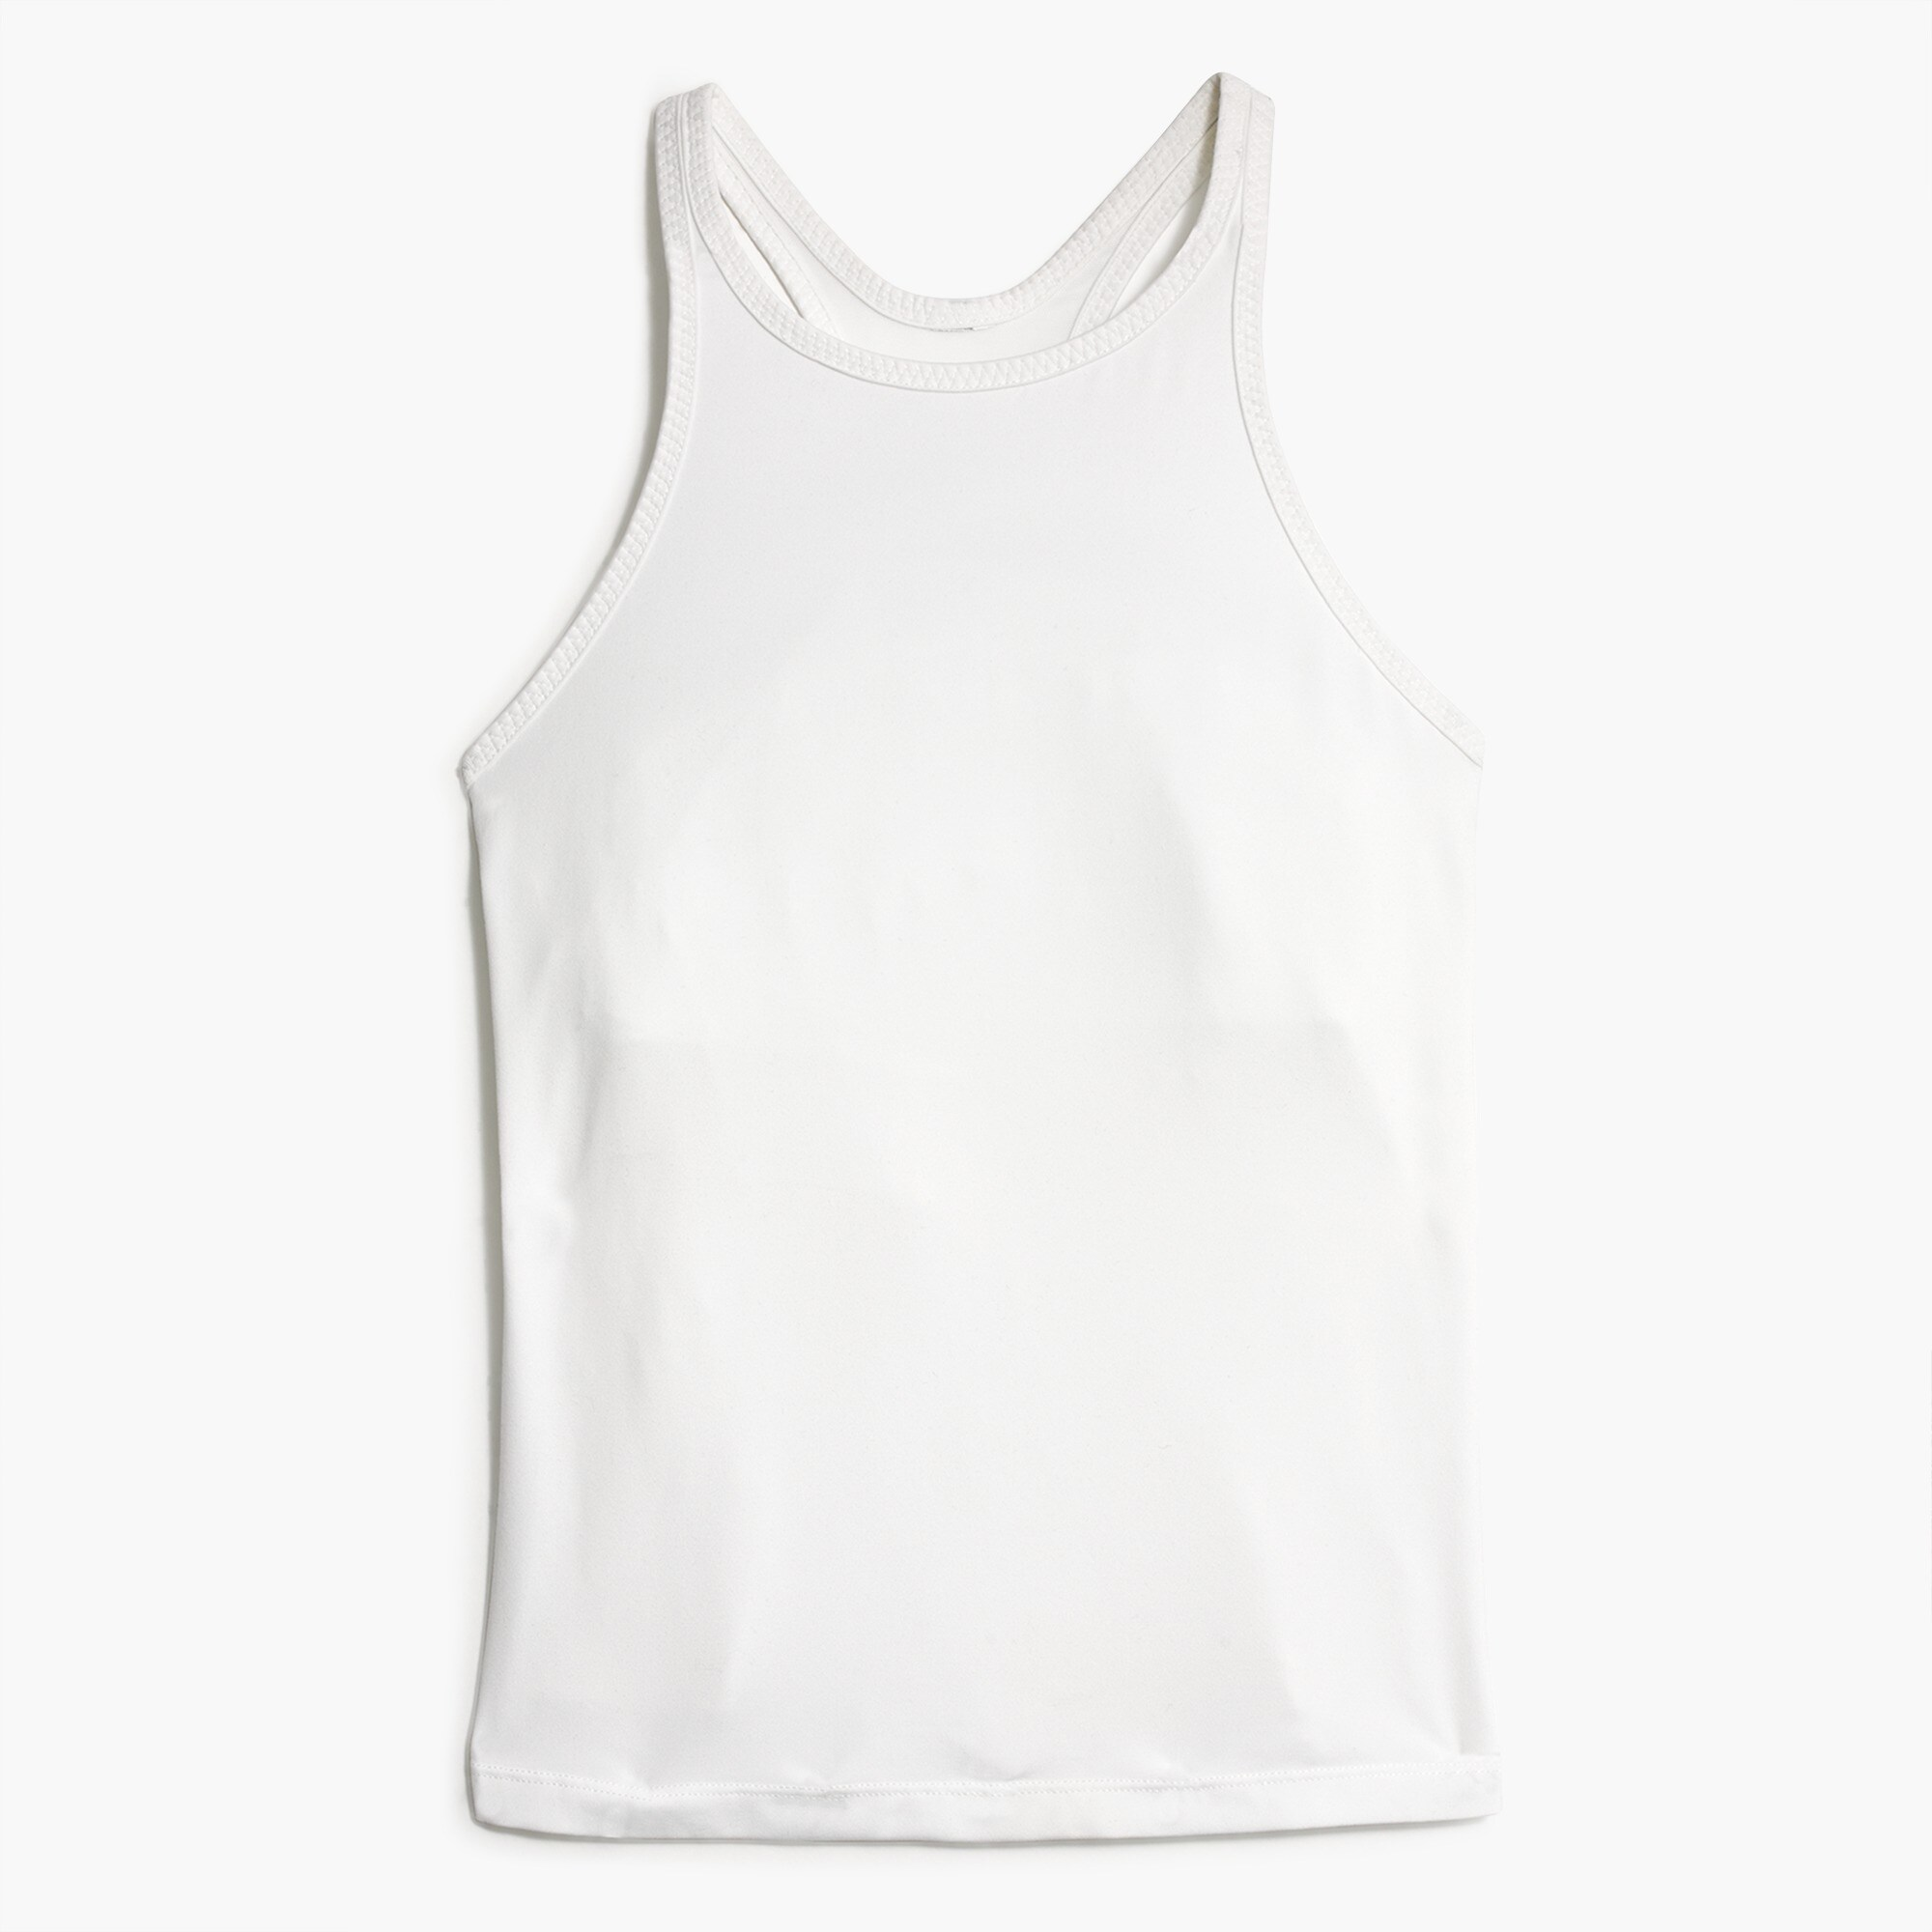 New Balance® for J.Crew racerback tank top with built-in sports bra